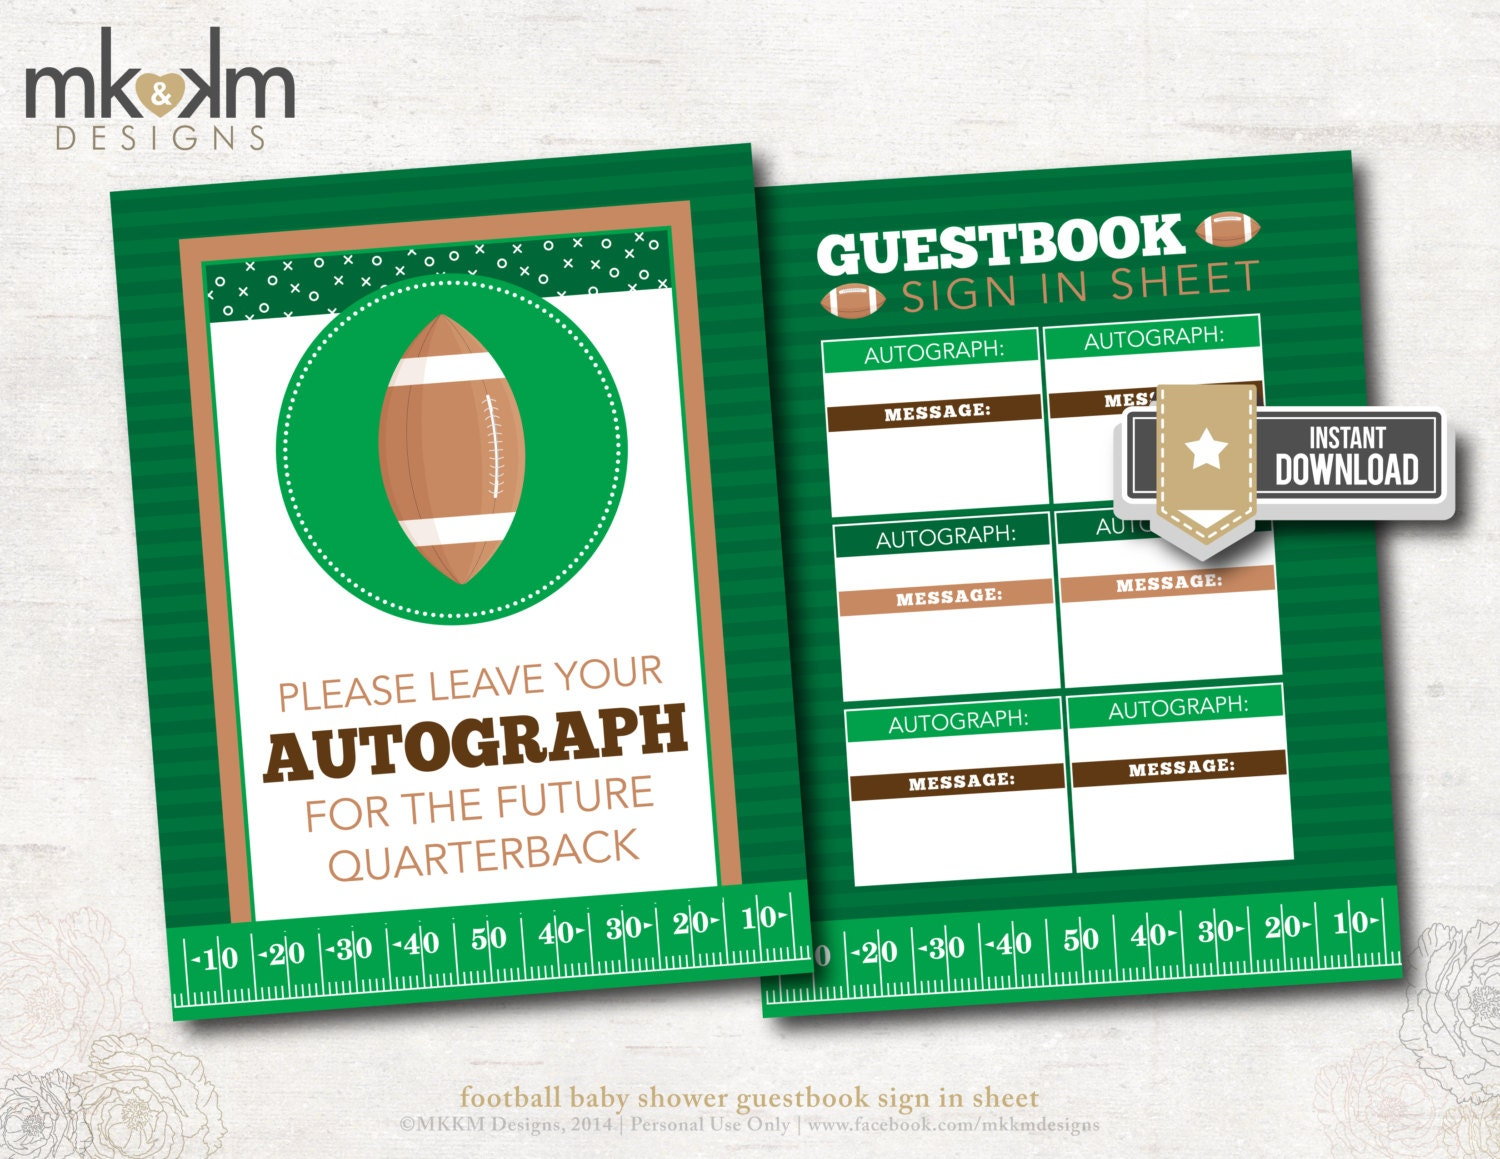 football baby shower guestbook sign in sheet sports by mkkmdesigns